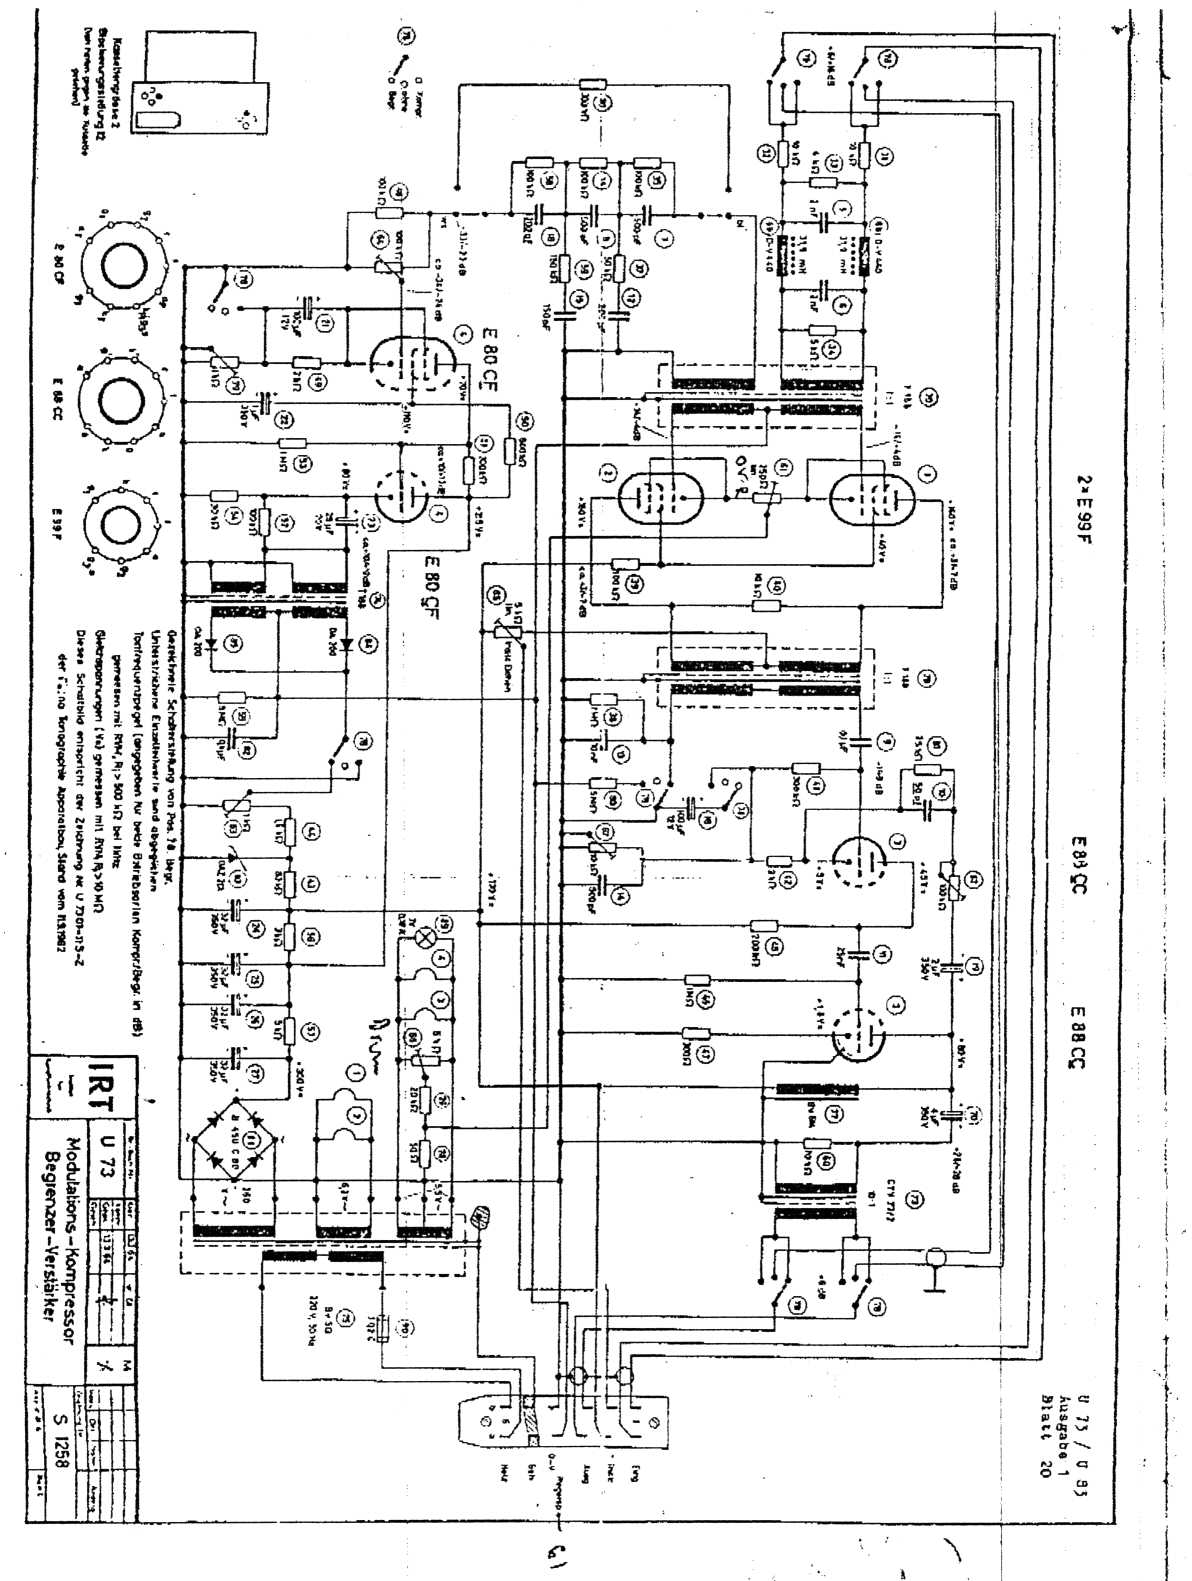 irt  Way Crossover Wiring Schematic on klh model 20 speakers, altec lansing, speakerlab horn, snell type elll, kef c95 3-way, klipsch alk, best mid-range, realistic model one, alon iv, altec lansing model 19, jbl l100,